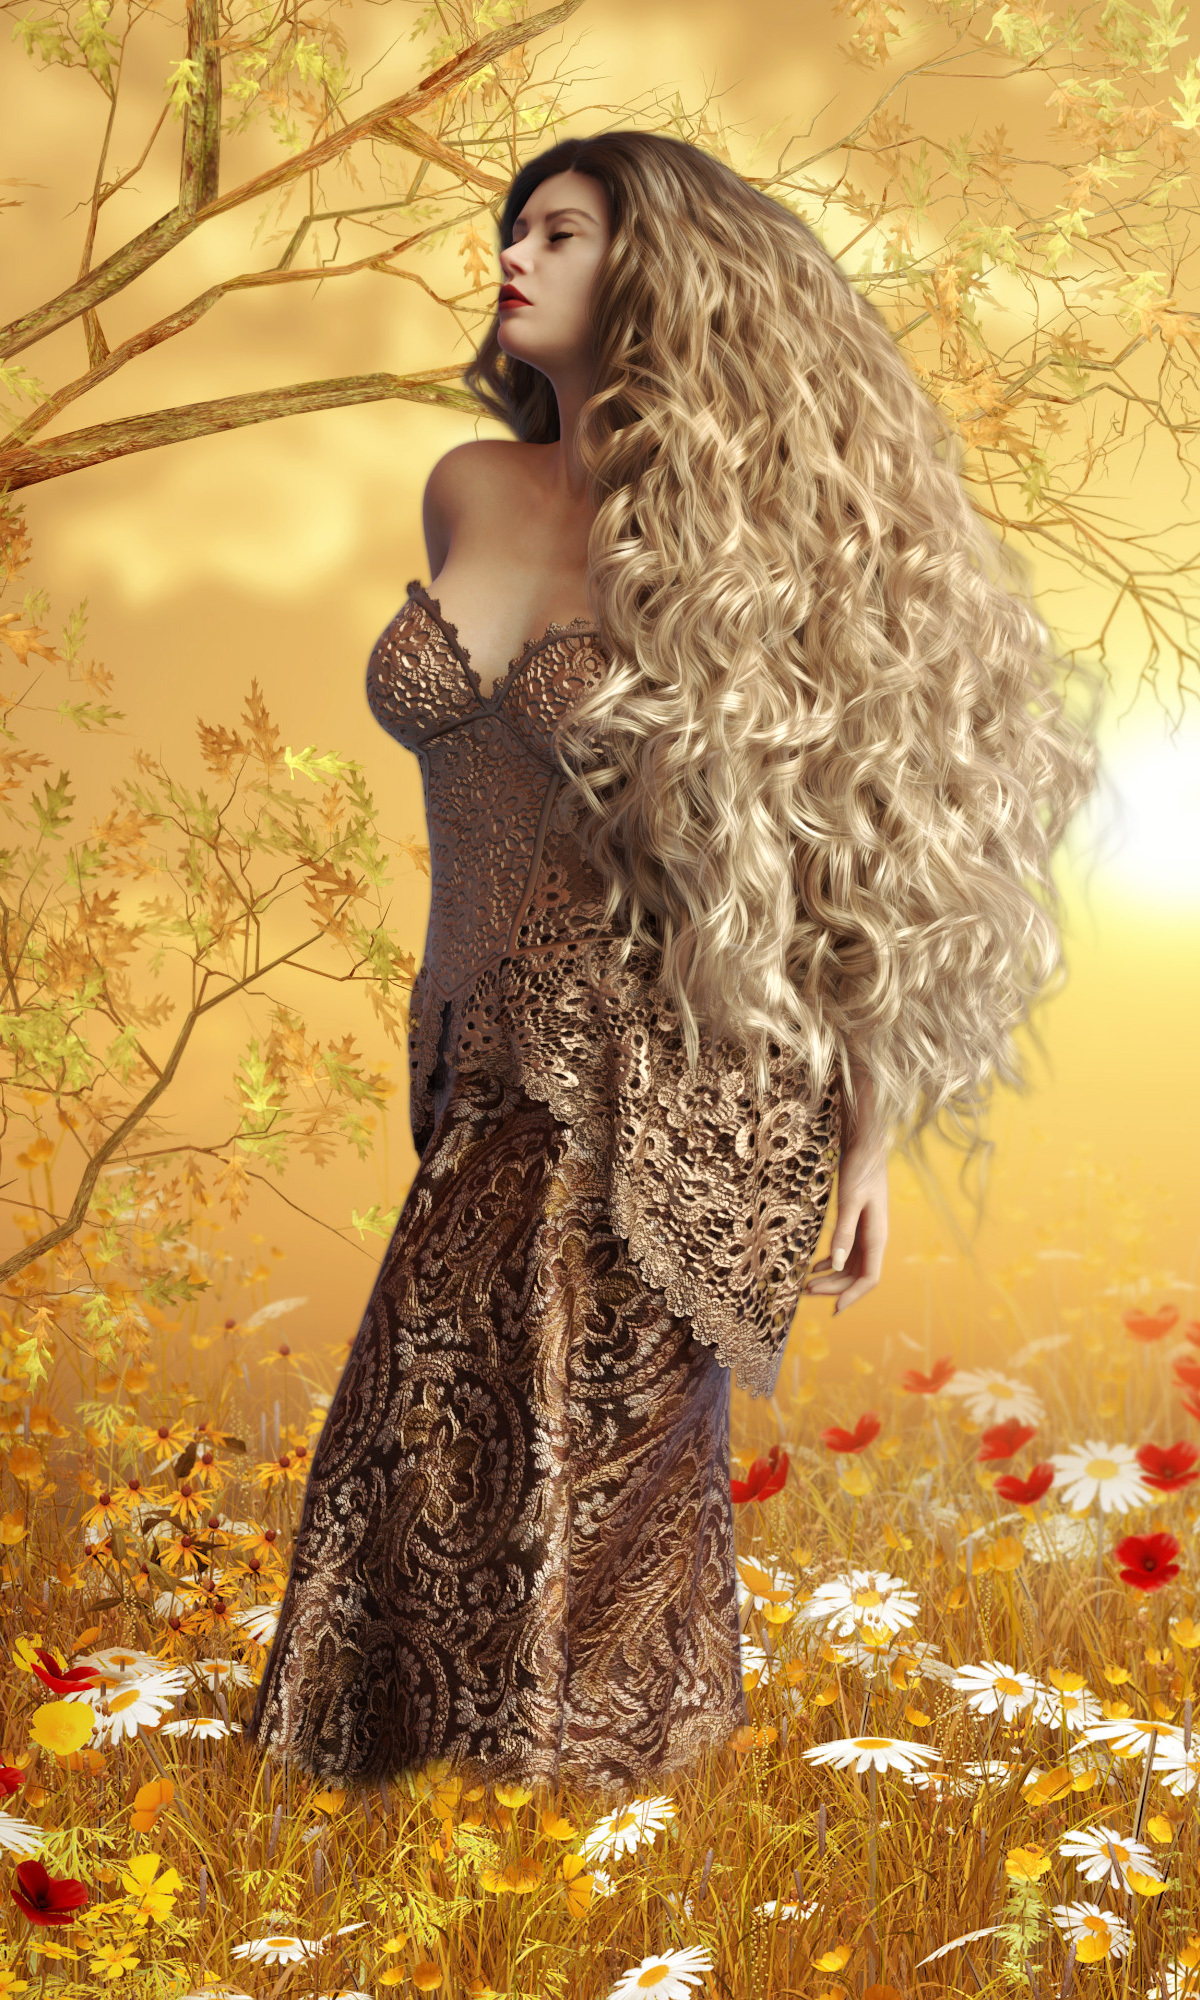 InStyle Bewitching Gown by Teufelseinhorn